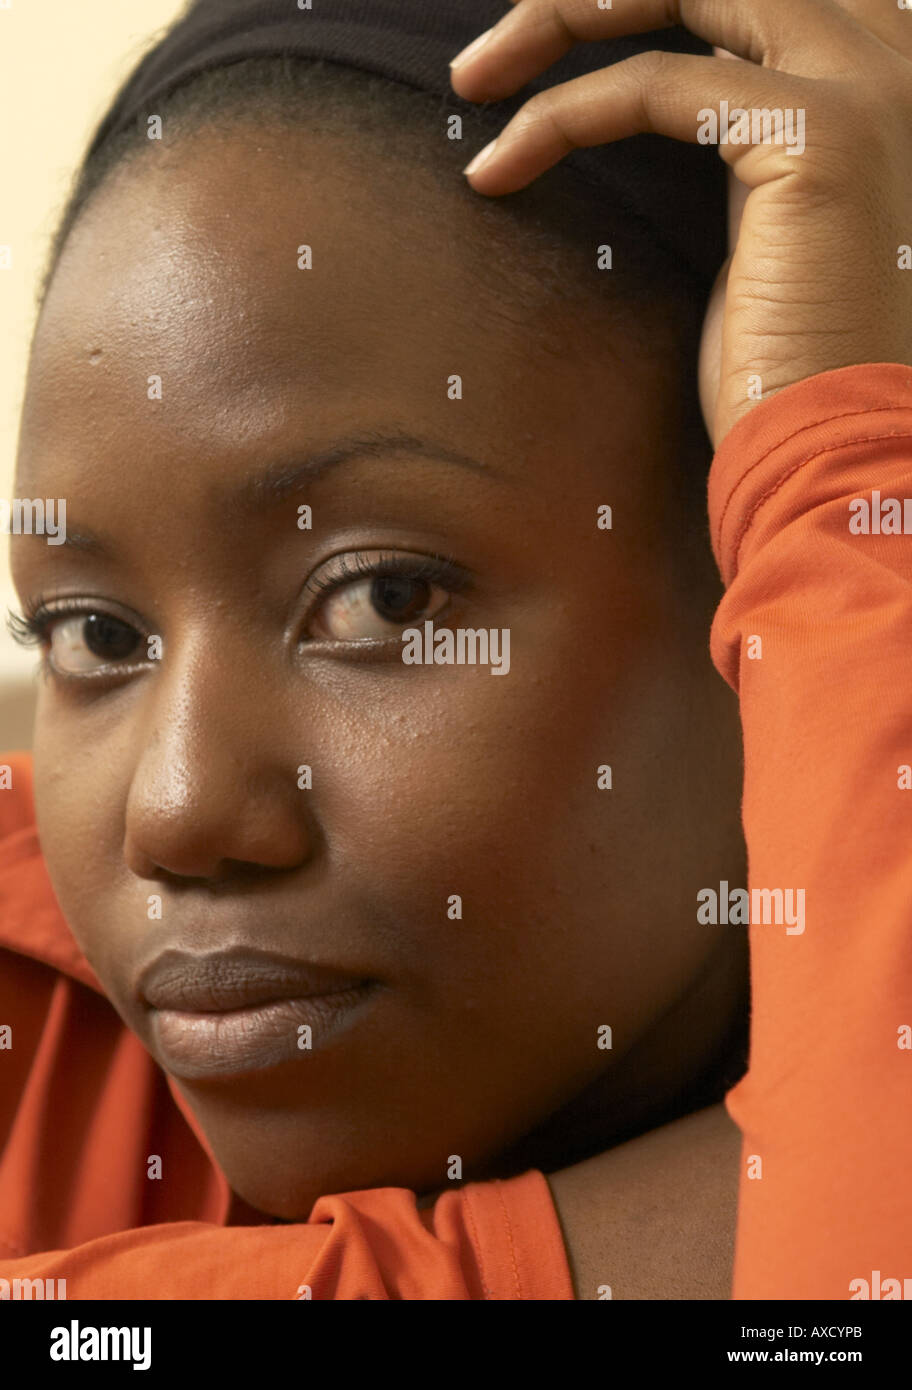 portrait of African female in early twenties eye contact - Stock Image